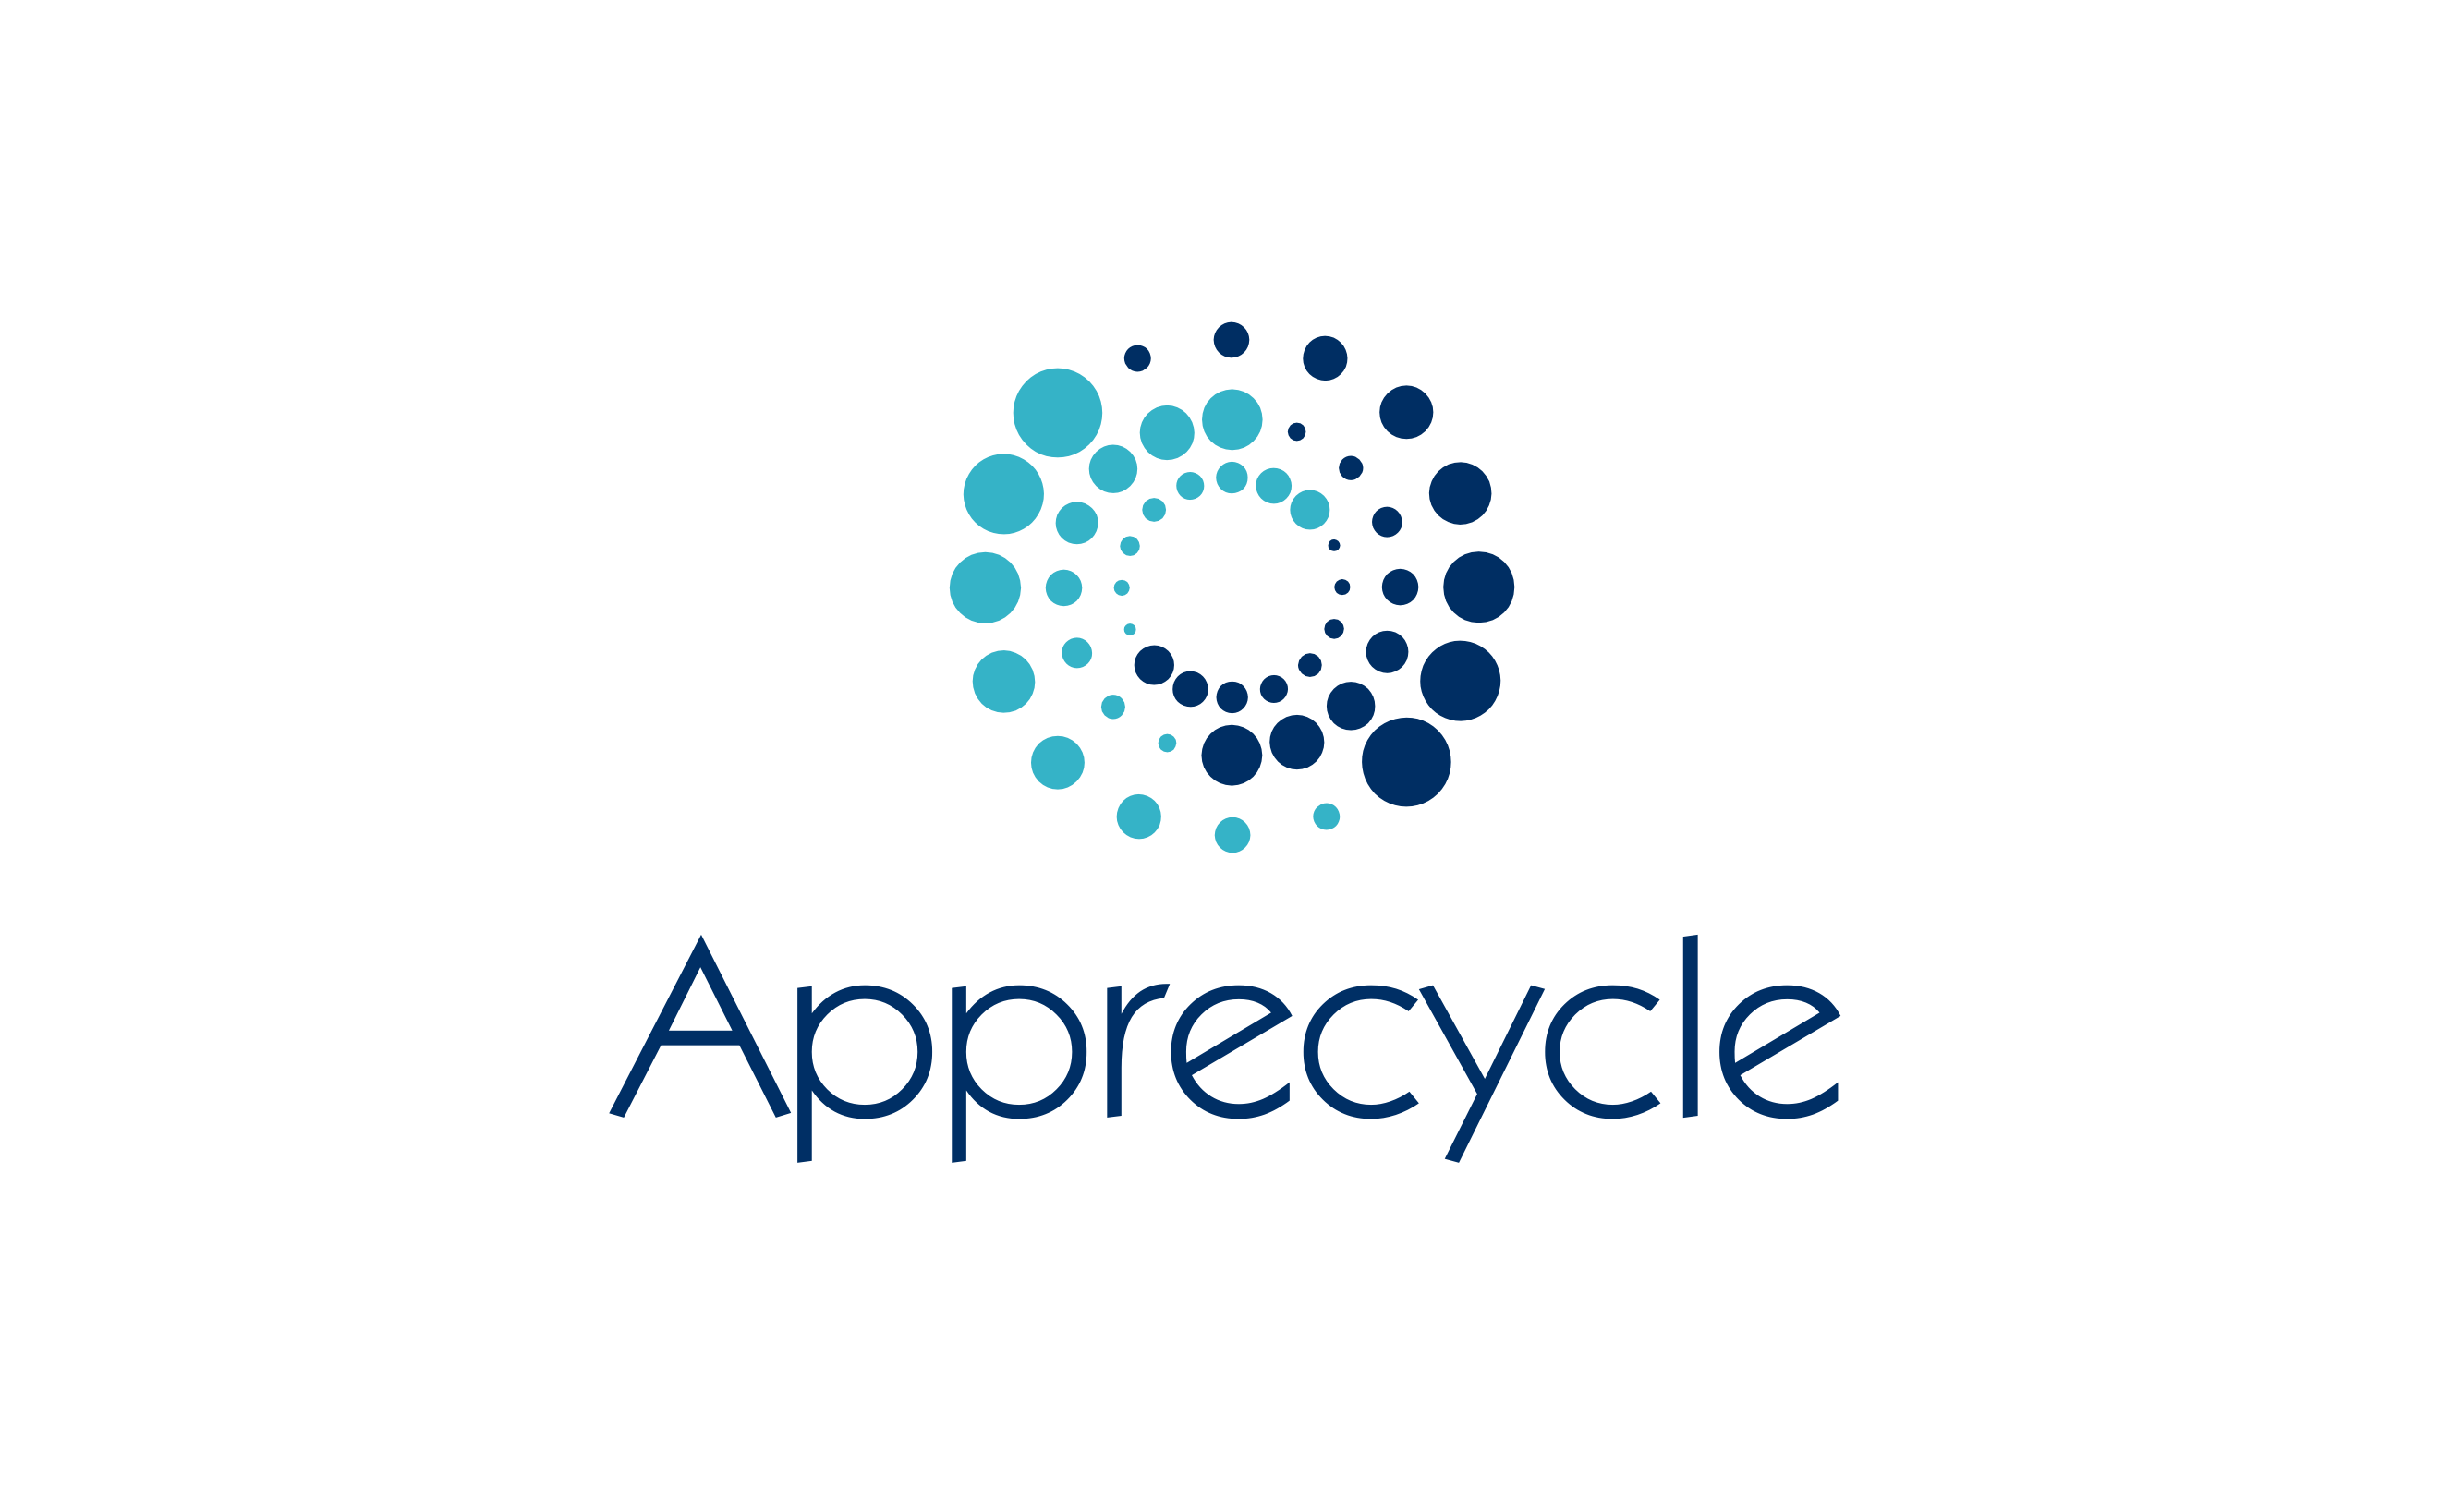 Apprecycle